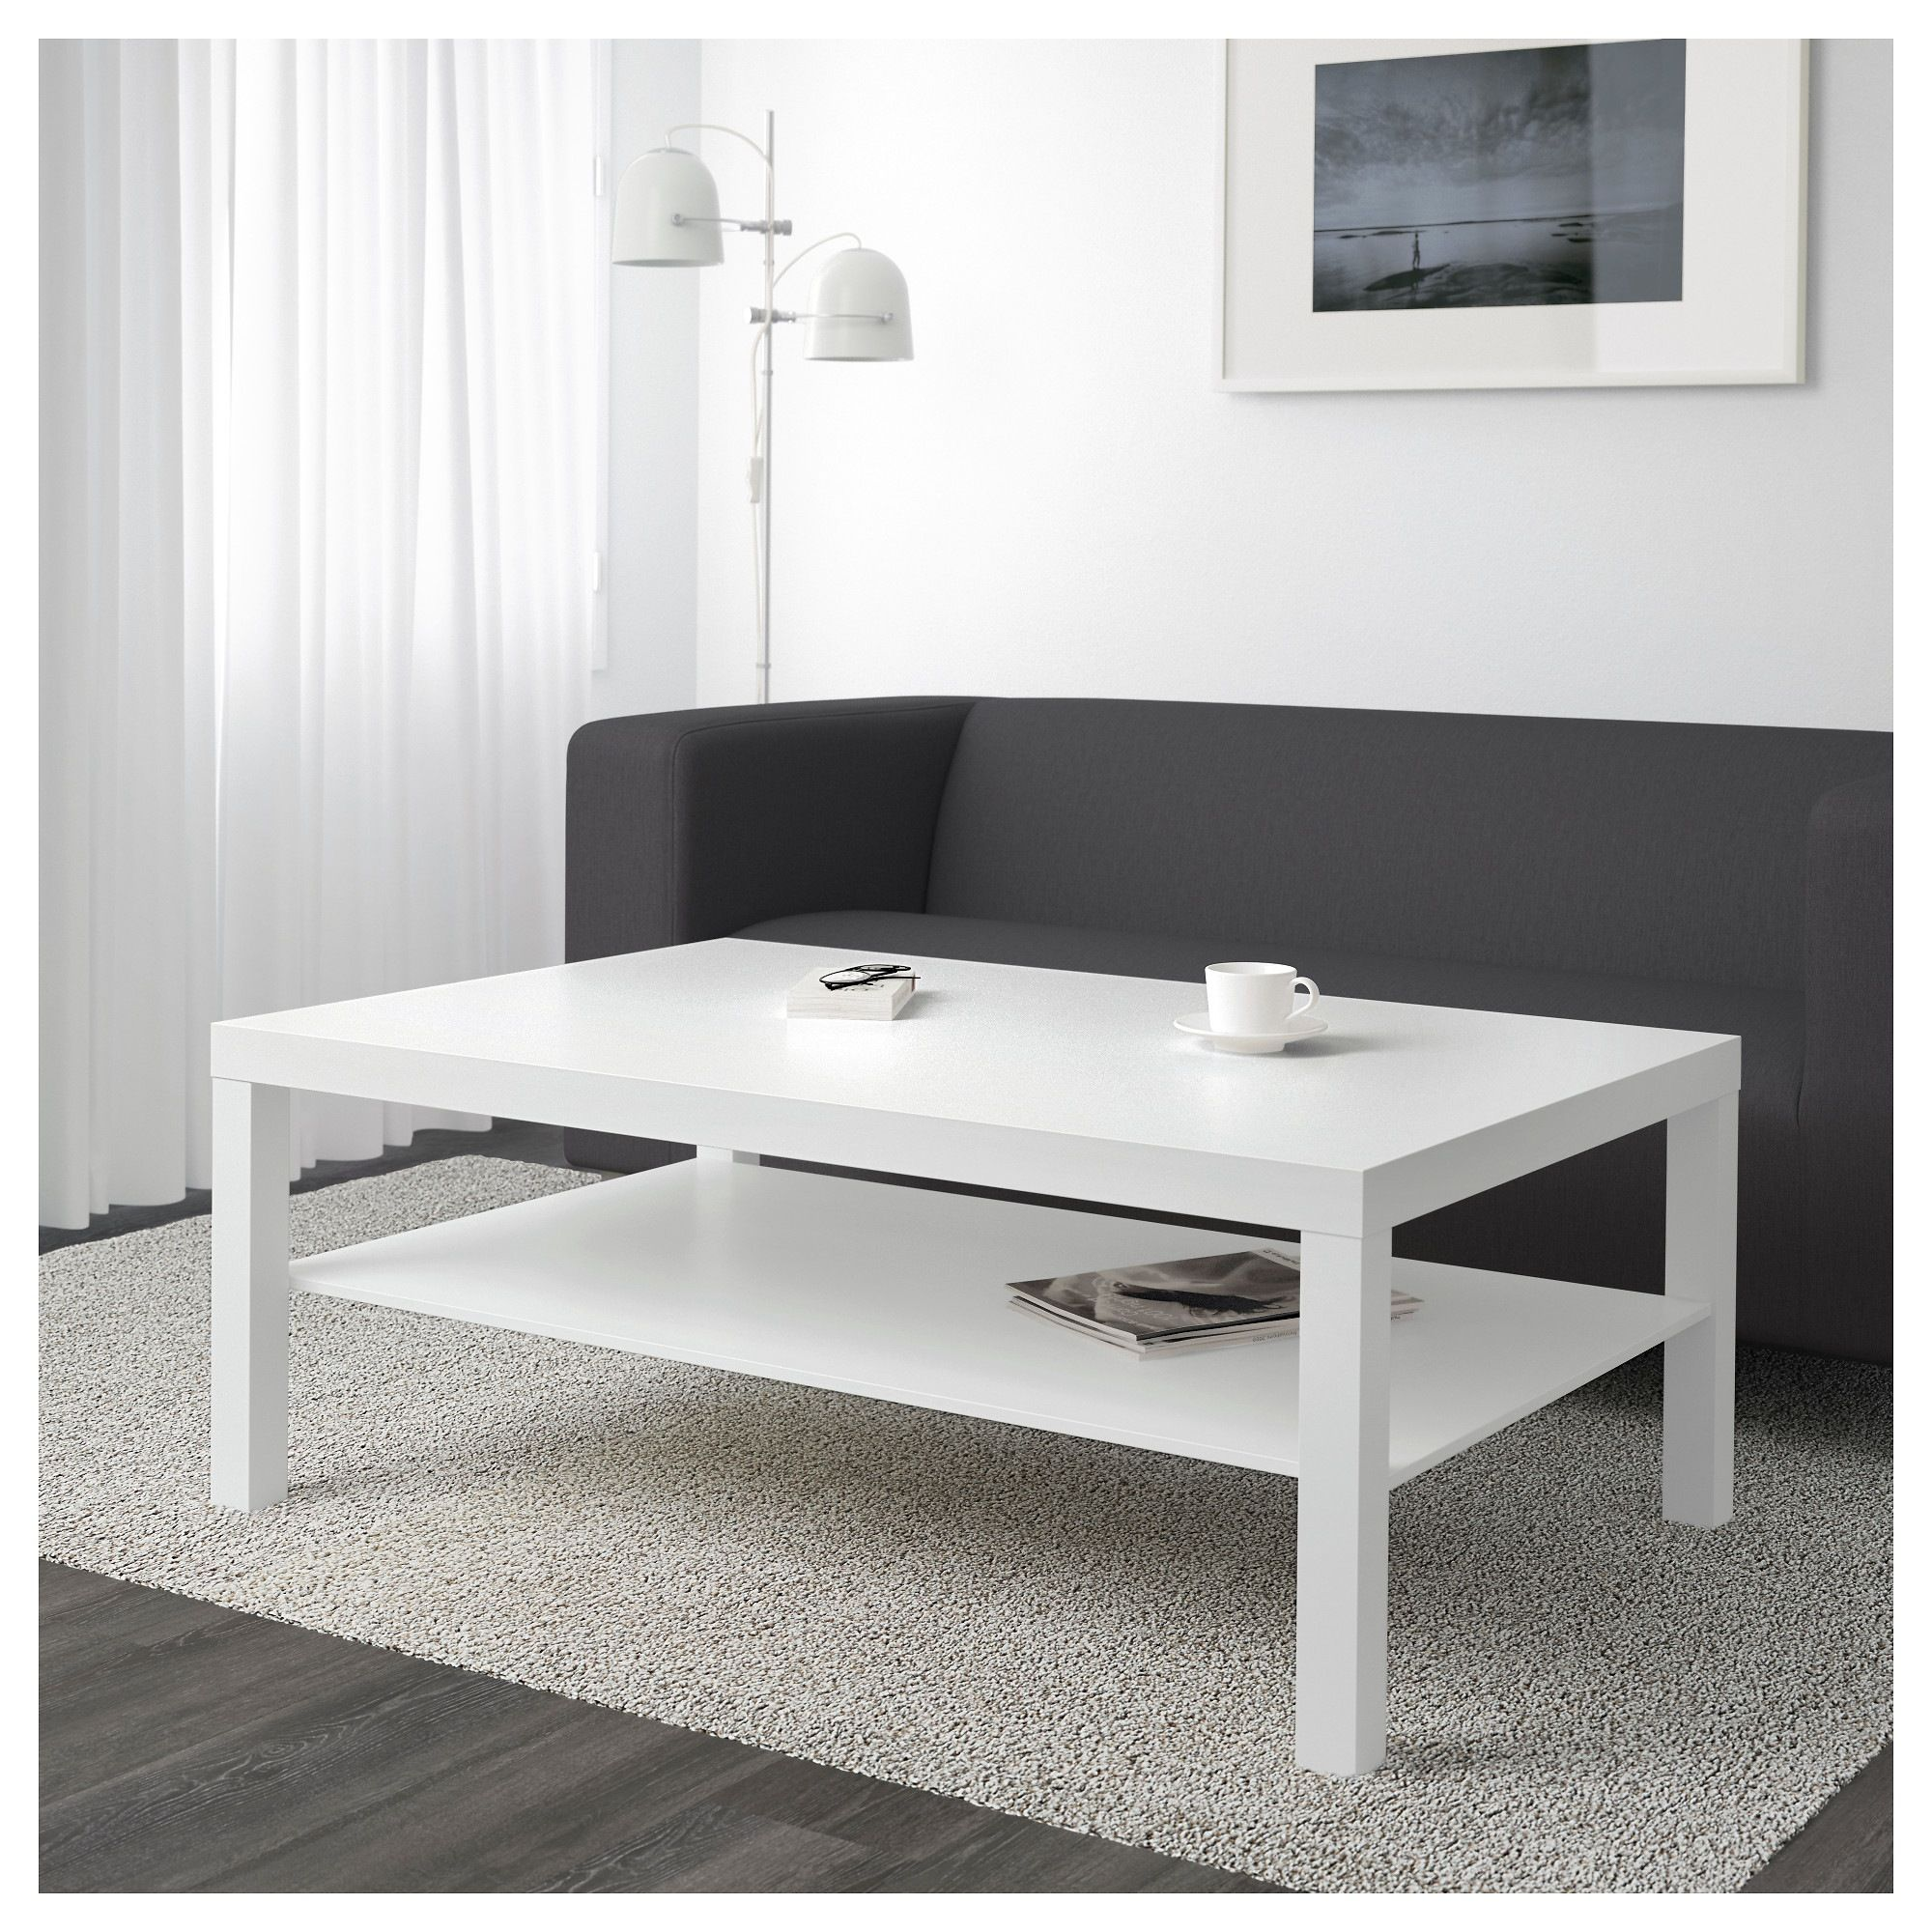 White High Gloss Coffee Table Ikea Download Ikea Lack Coffee Table 3 N In 2020 Ikea Lack Coffee Table Lack Coffee Table Ikea Coffee Table